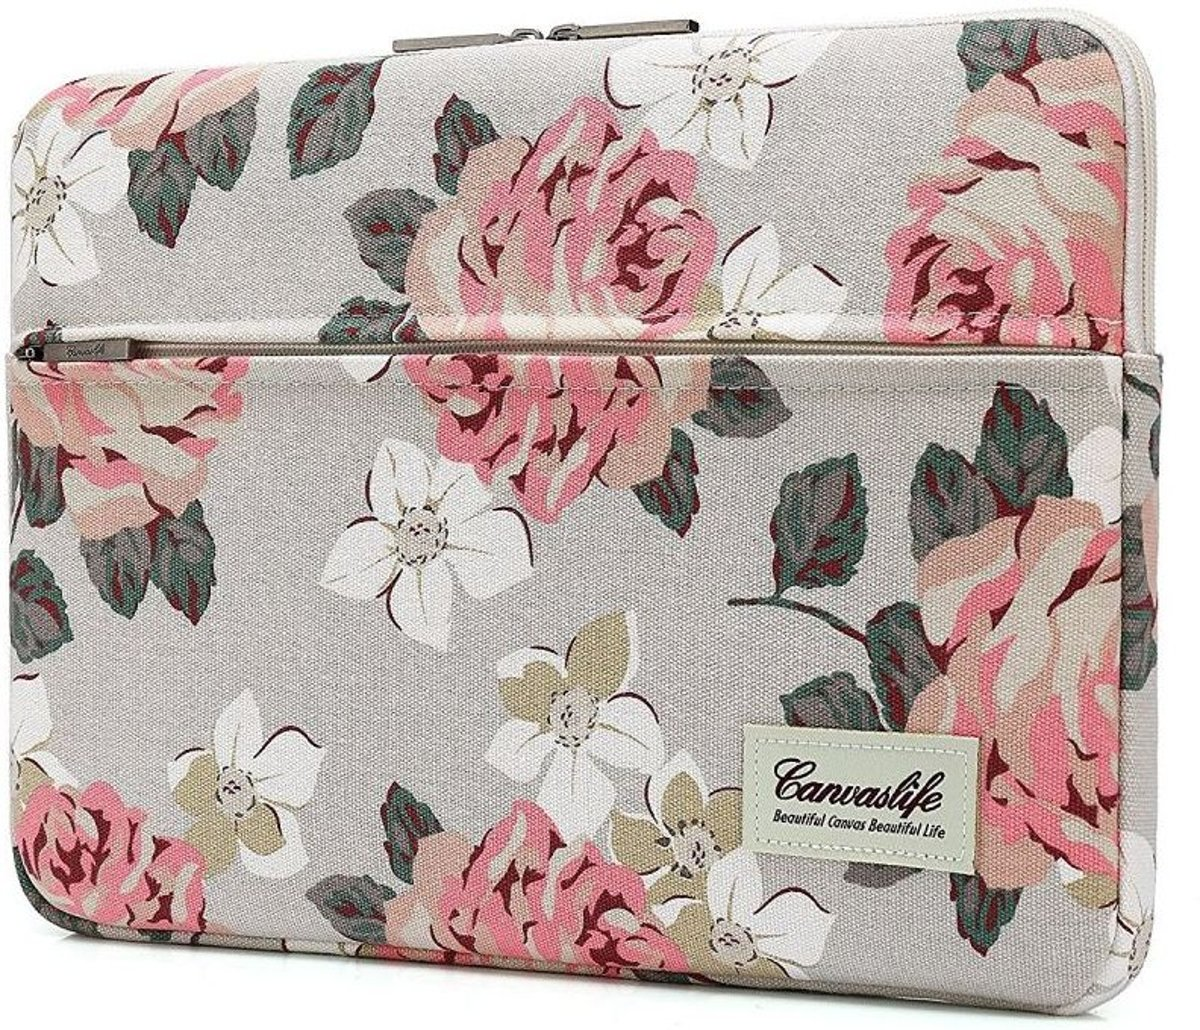 Canvaslife MacBook Air/Pro Hoes / Sleeve 13 inch - White Rose